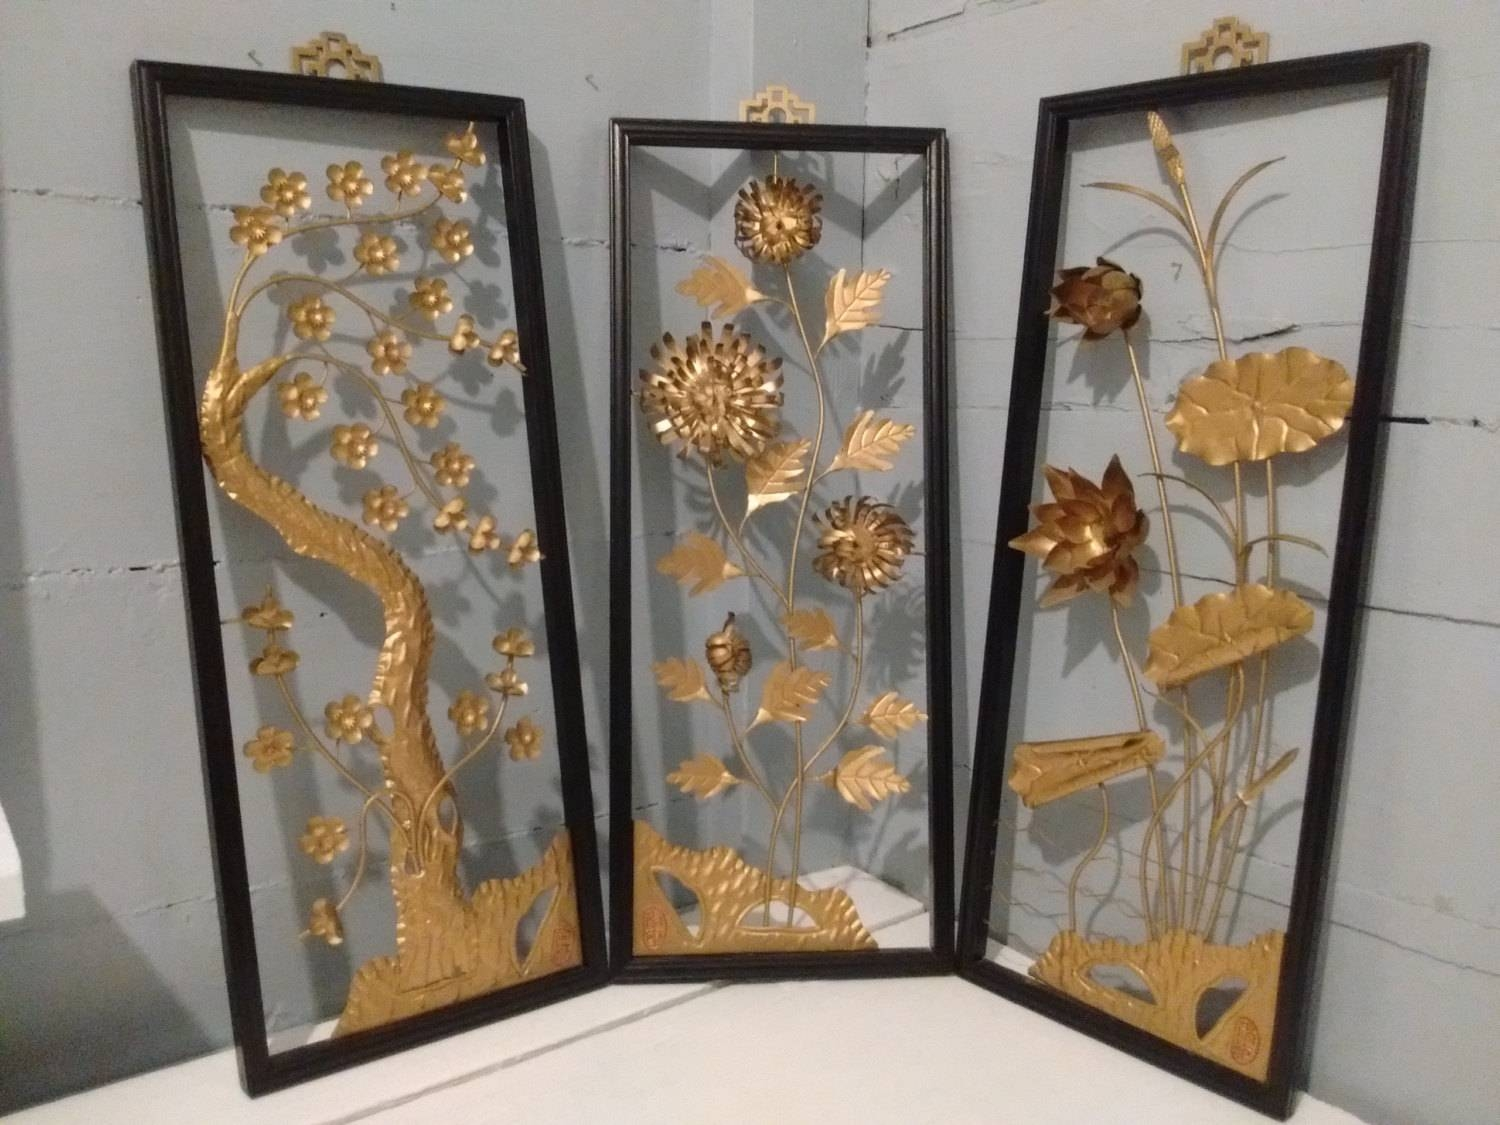 Art, Floral, Framed, 3d, Wall Art, Metal, Sculpture, Set Of 3, Mid Intended For Best And Newest Framed 3d Wall Art (View 15 of 20)